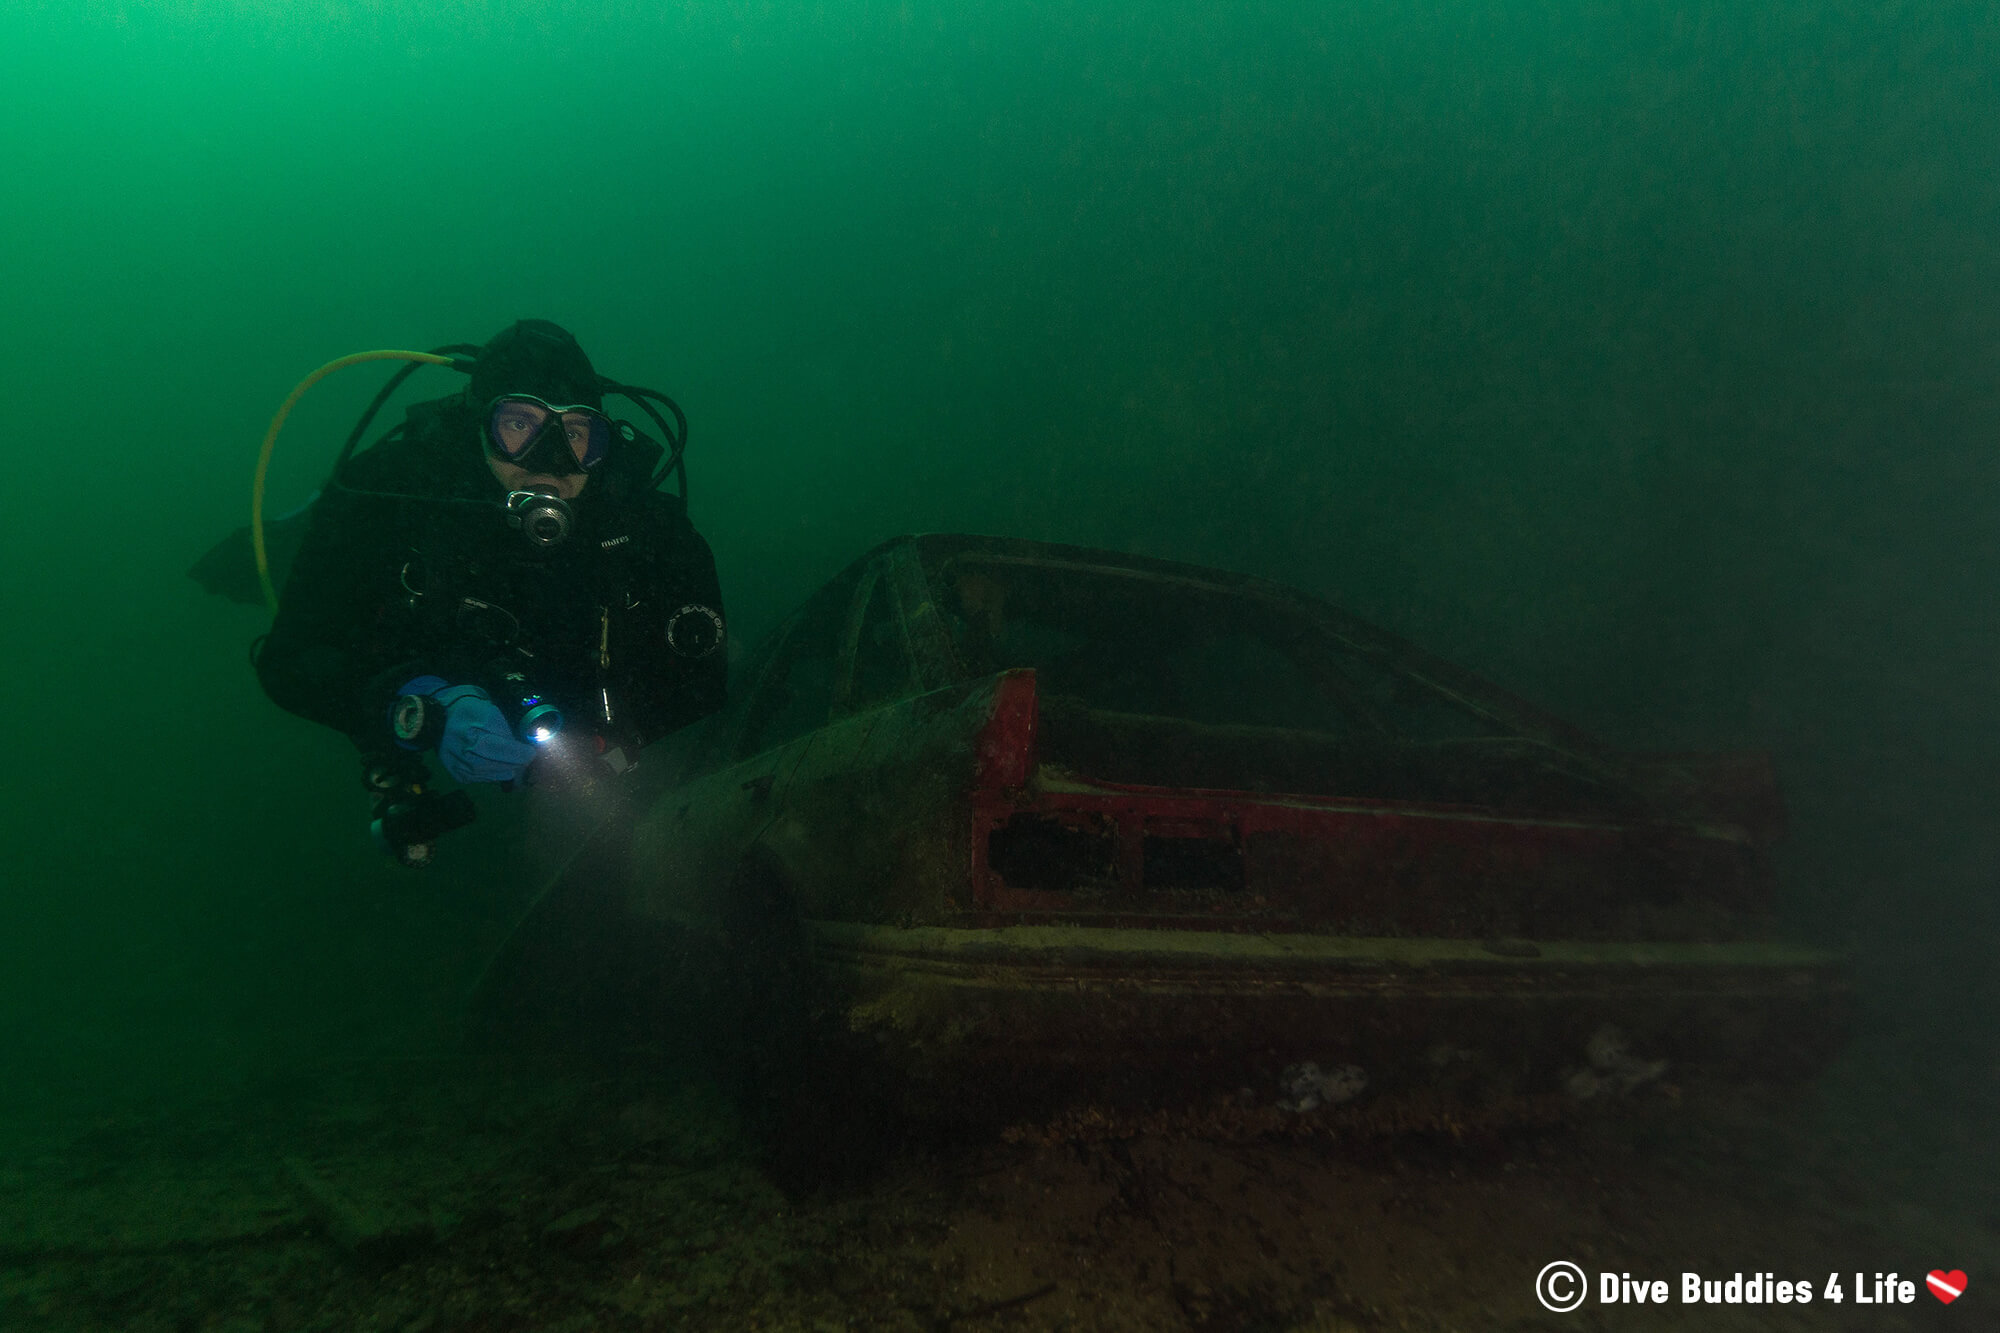 Joey Scuba Diving The Vobster Quay In England And Finding A Sunken Car, United Kingdom, Europe